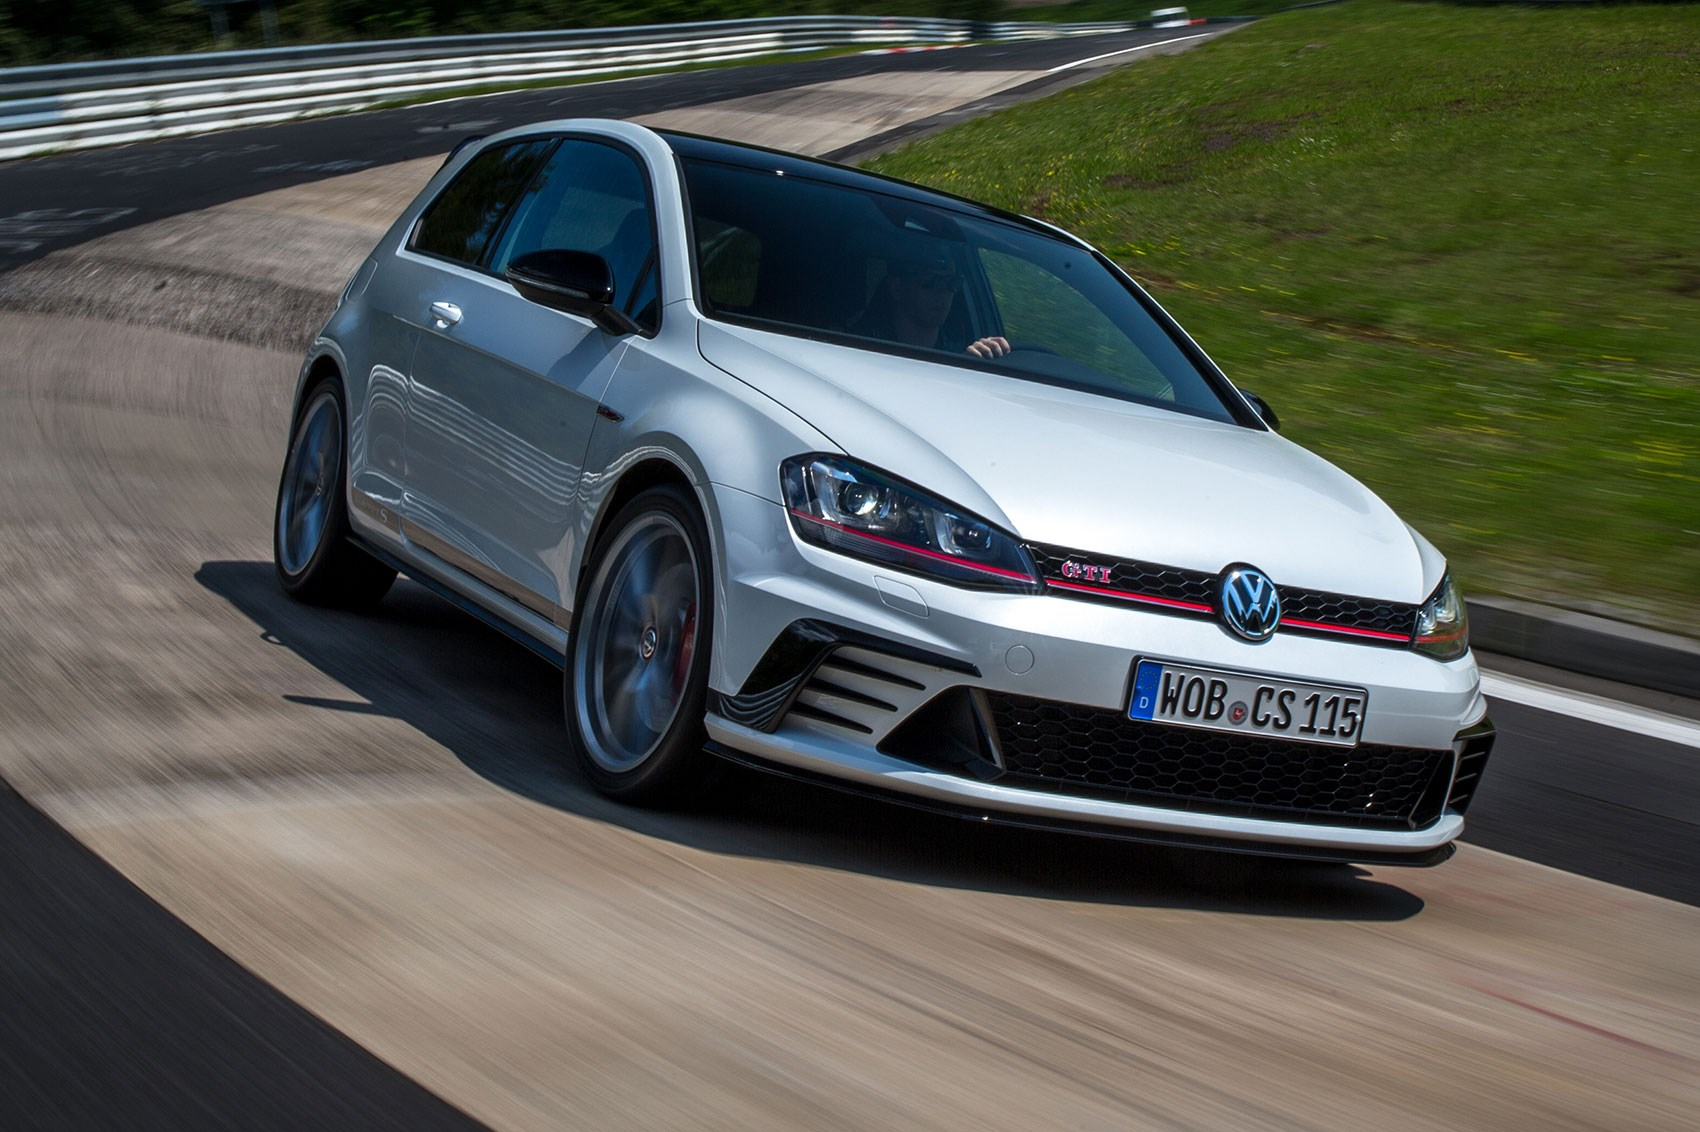 vw golf gti clubsport s 2016 review by car magazine. Black Bedroom Furniture Sets. Home Design Ideas